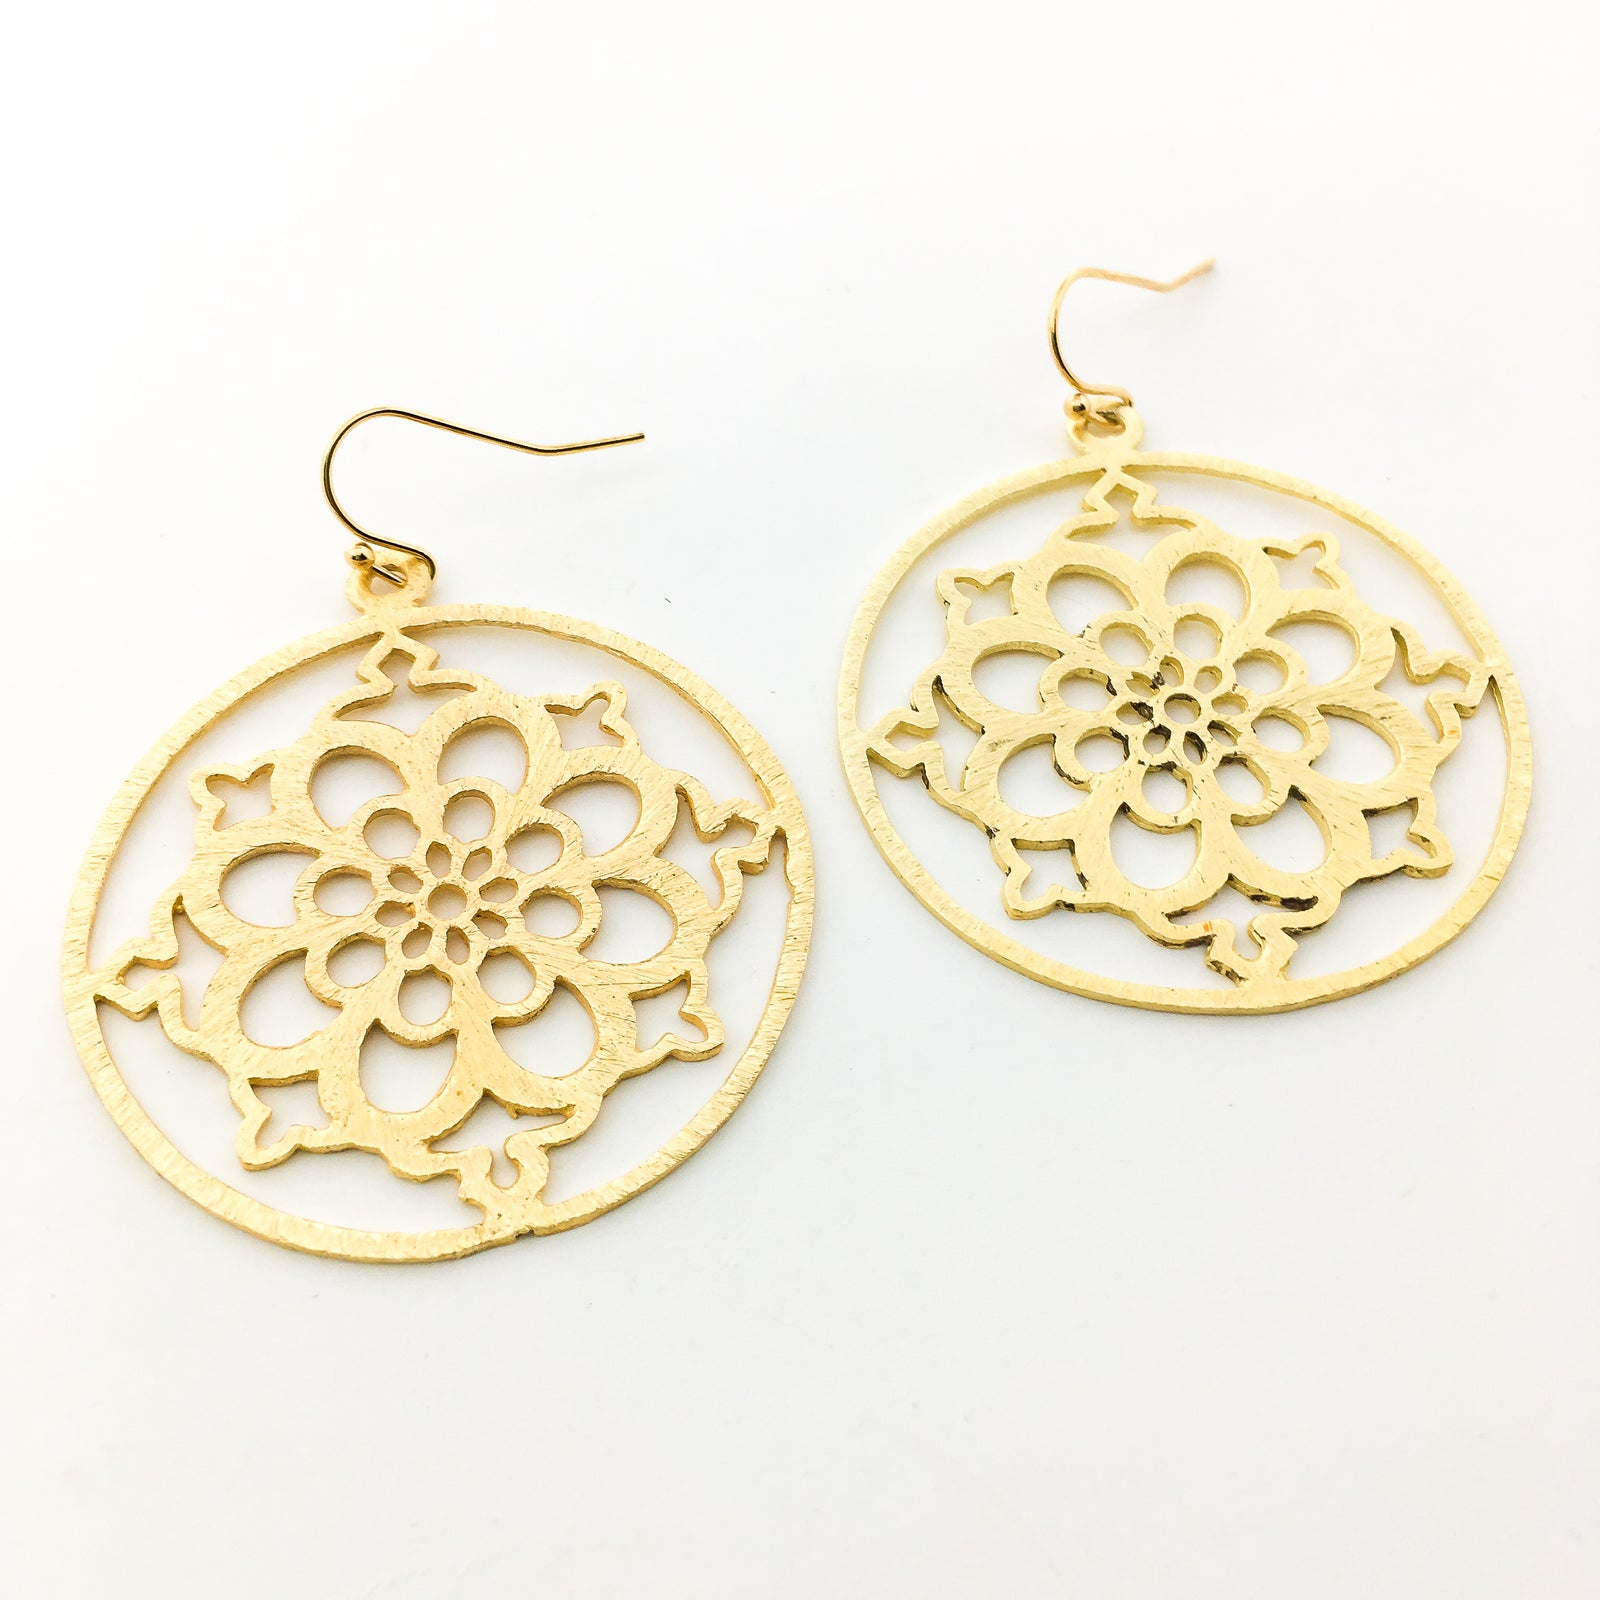 BRUSHED HANGING FLORAL EARRINGS | 14K GOLD-FILLED